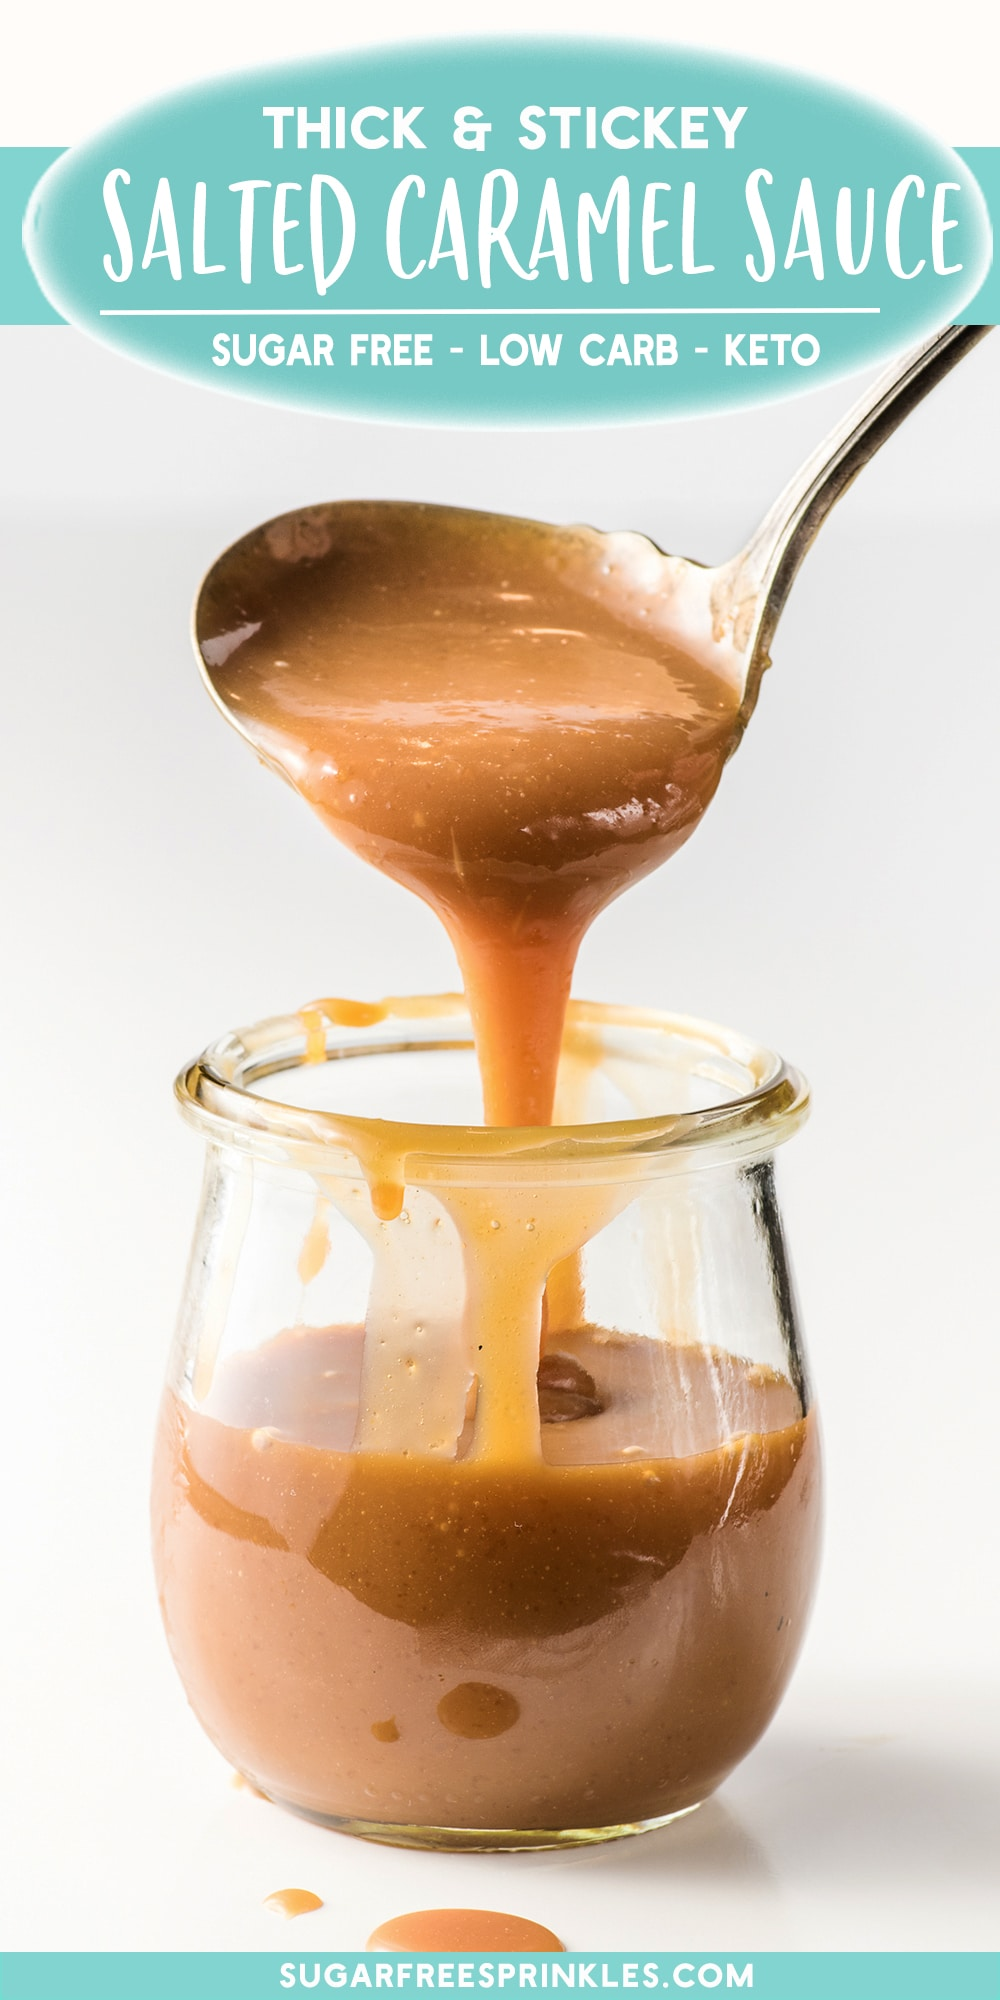 Sticky, gooey, and stable.  This keto caramel sauce doesn\'t solidify when cold and has a perfectly smooth texture even out of the fridge.   This is a great topping for low carb ice creams, keto-friendly desserts, and makes for a sweet low carb treat.